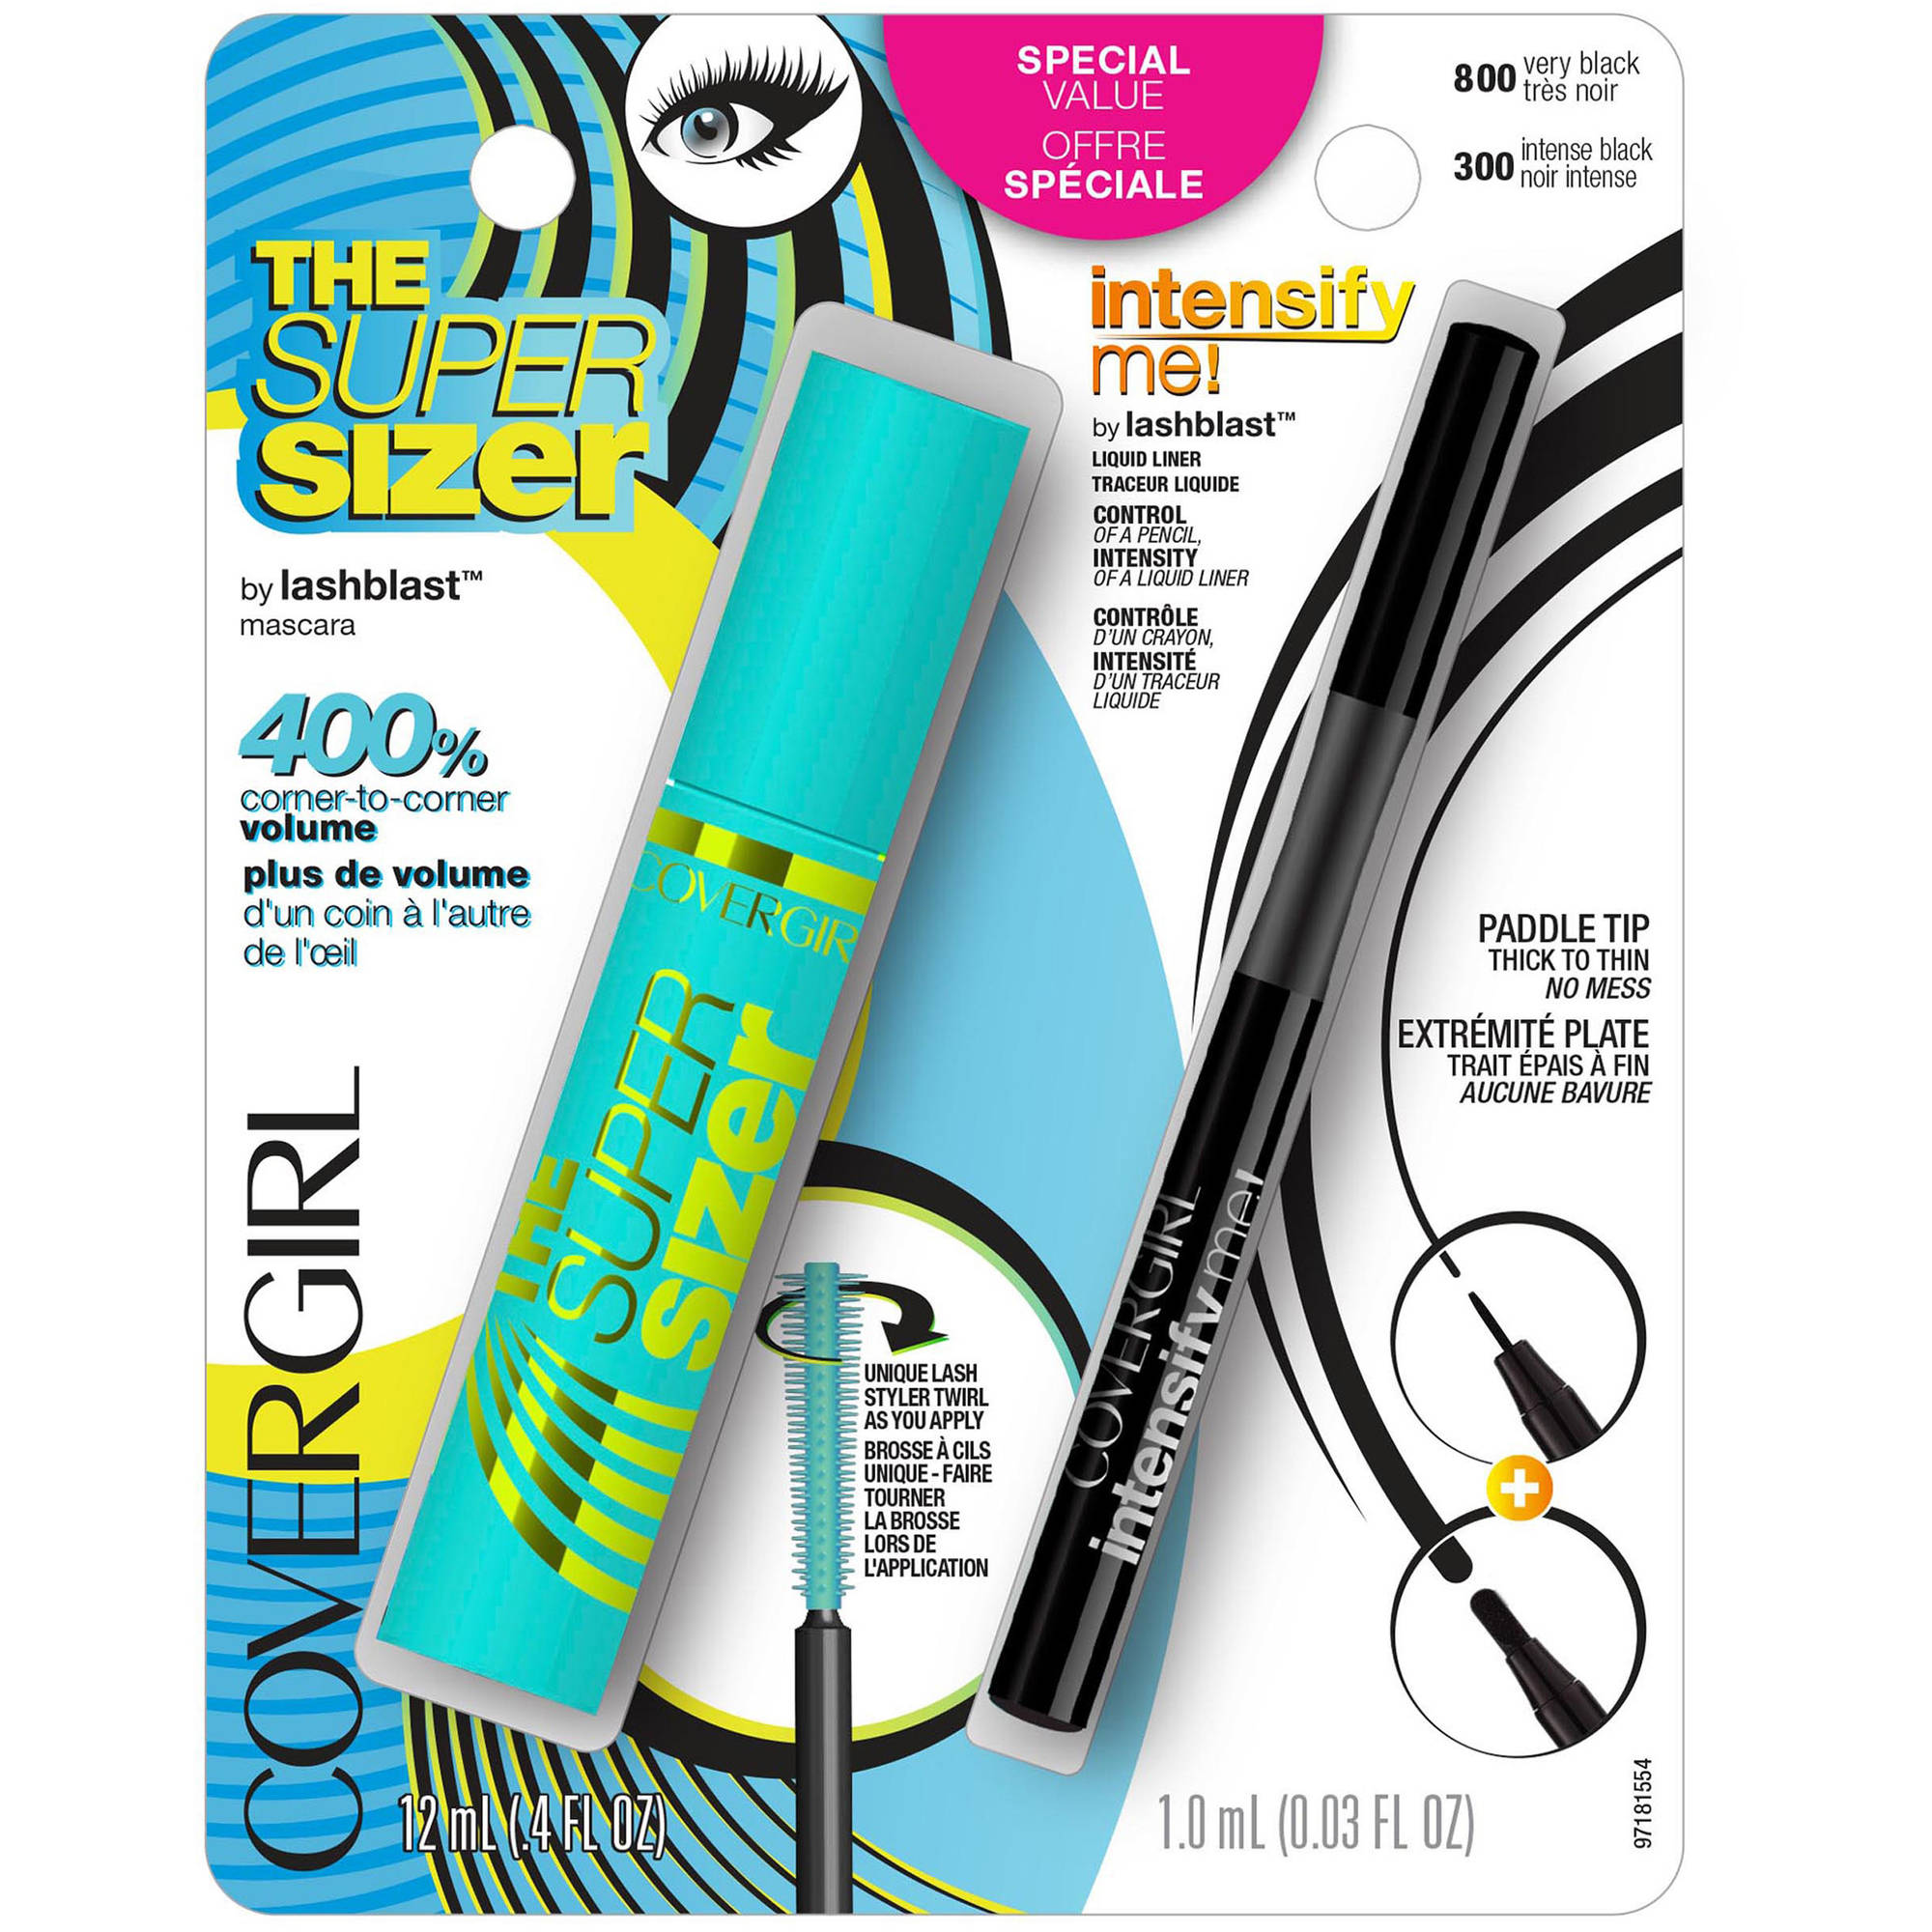 COVERGIRL The Super Sizer Mascara & Intensify Me! Liquid Liner by Lashblast Combo Pack, 2 pc